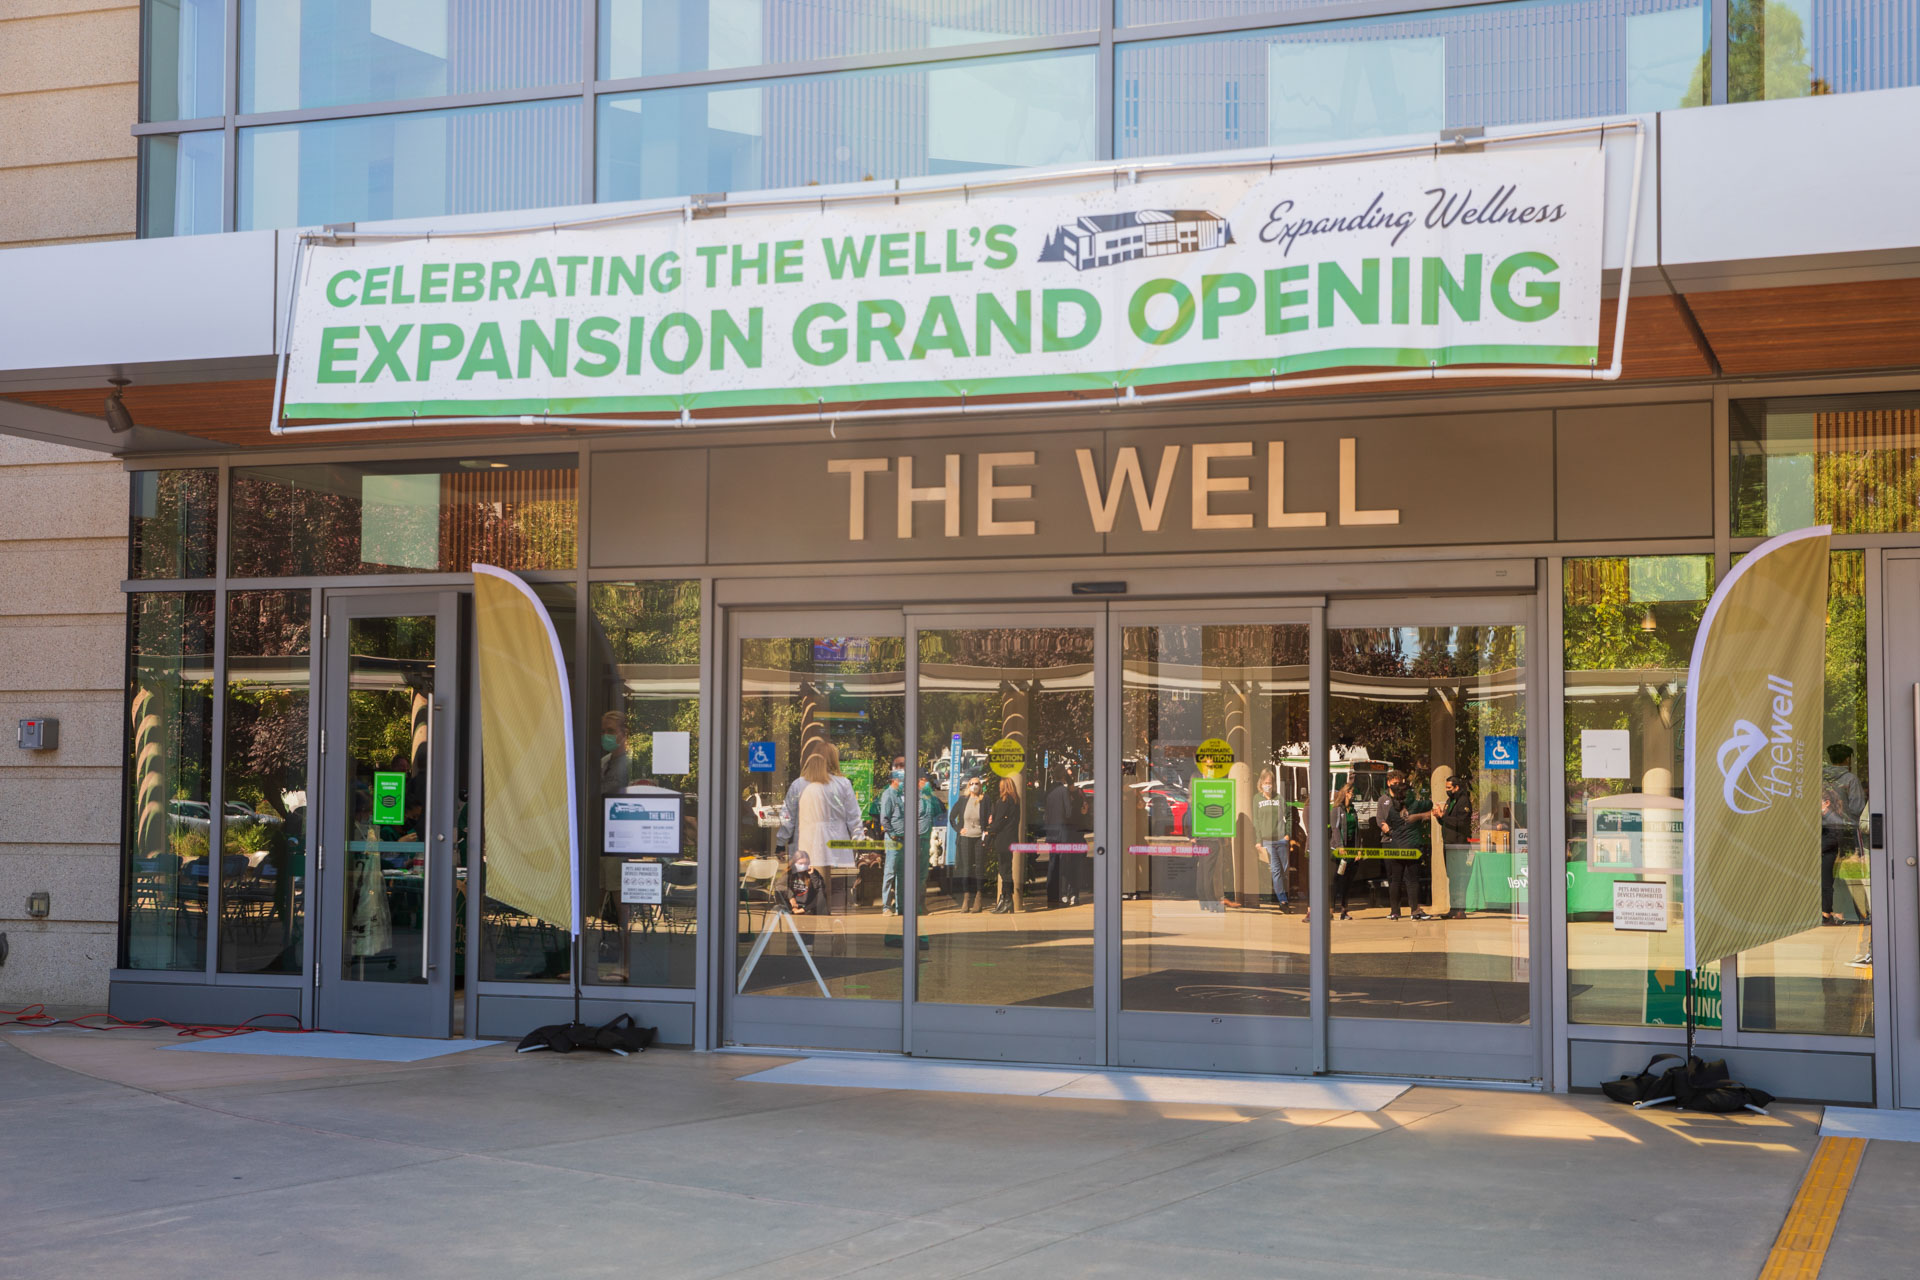 The front entrance of The WELL building, with a banner reading Celebrating The WELL's expansion grand opening above the sliding doors